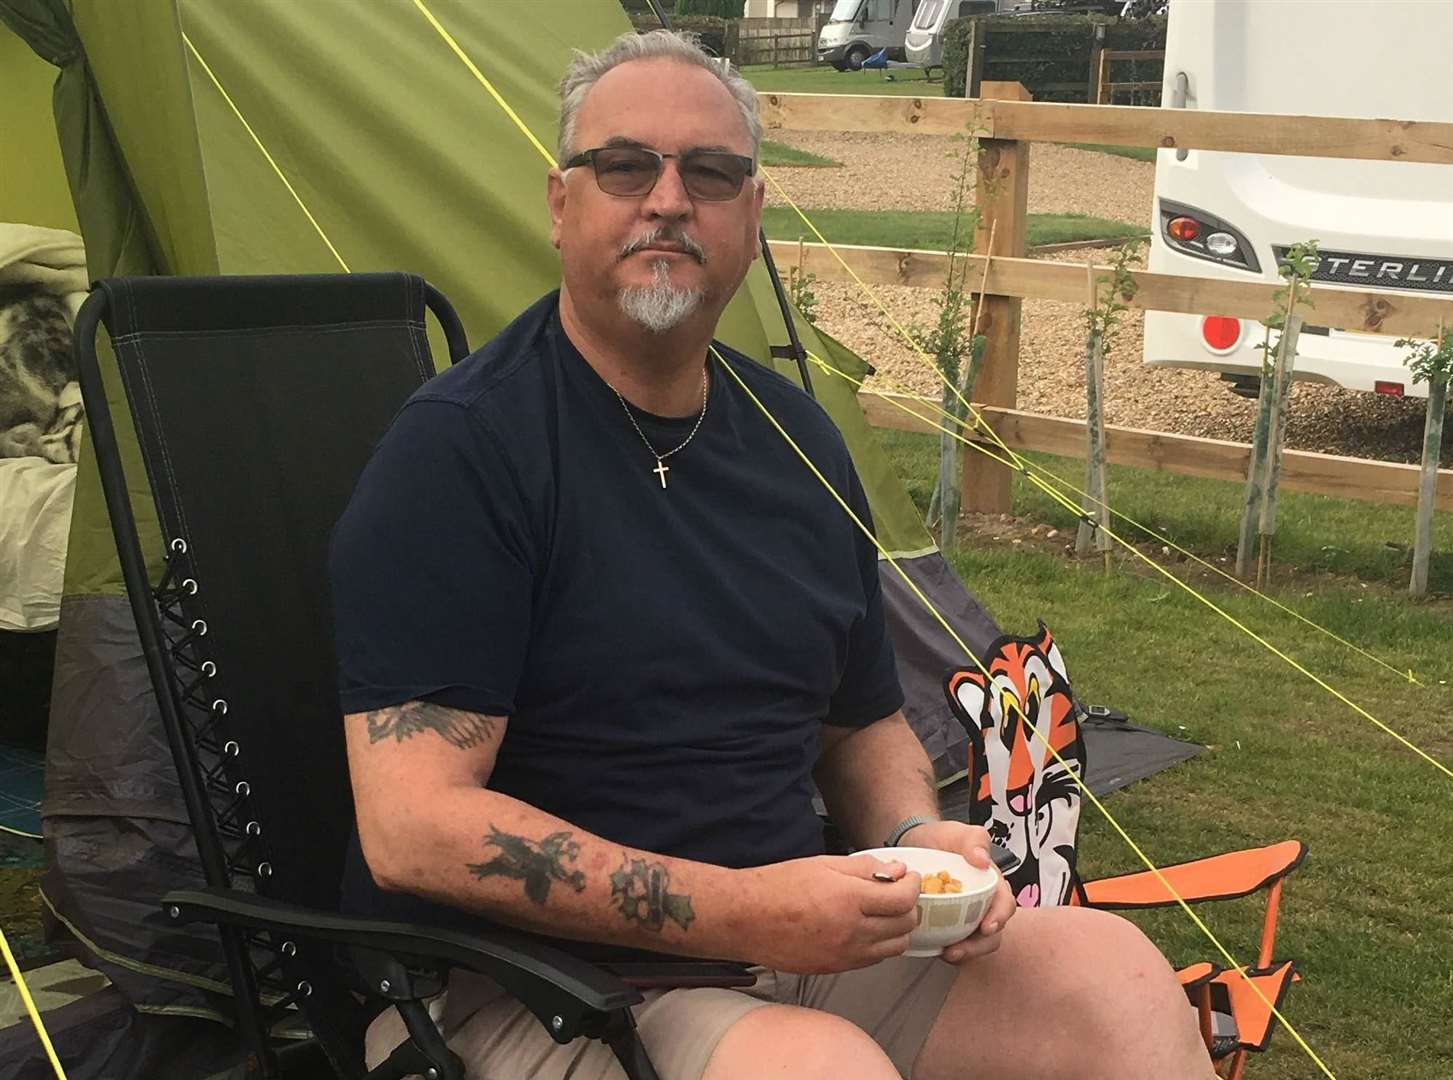 Dave Manser enjoying a camping trip to Norfolk to celebrate his 66th birthday a week before his death